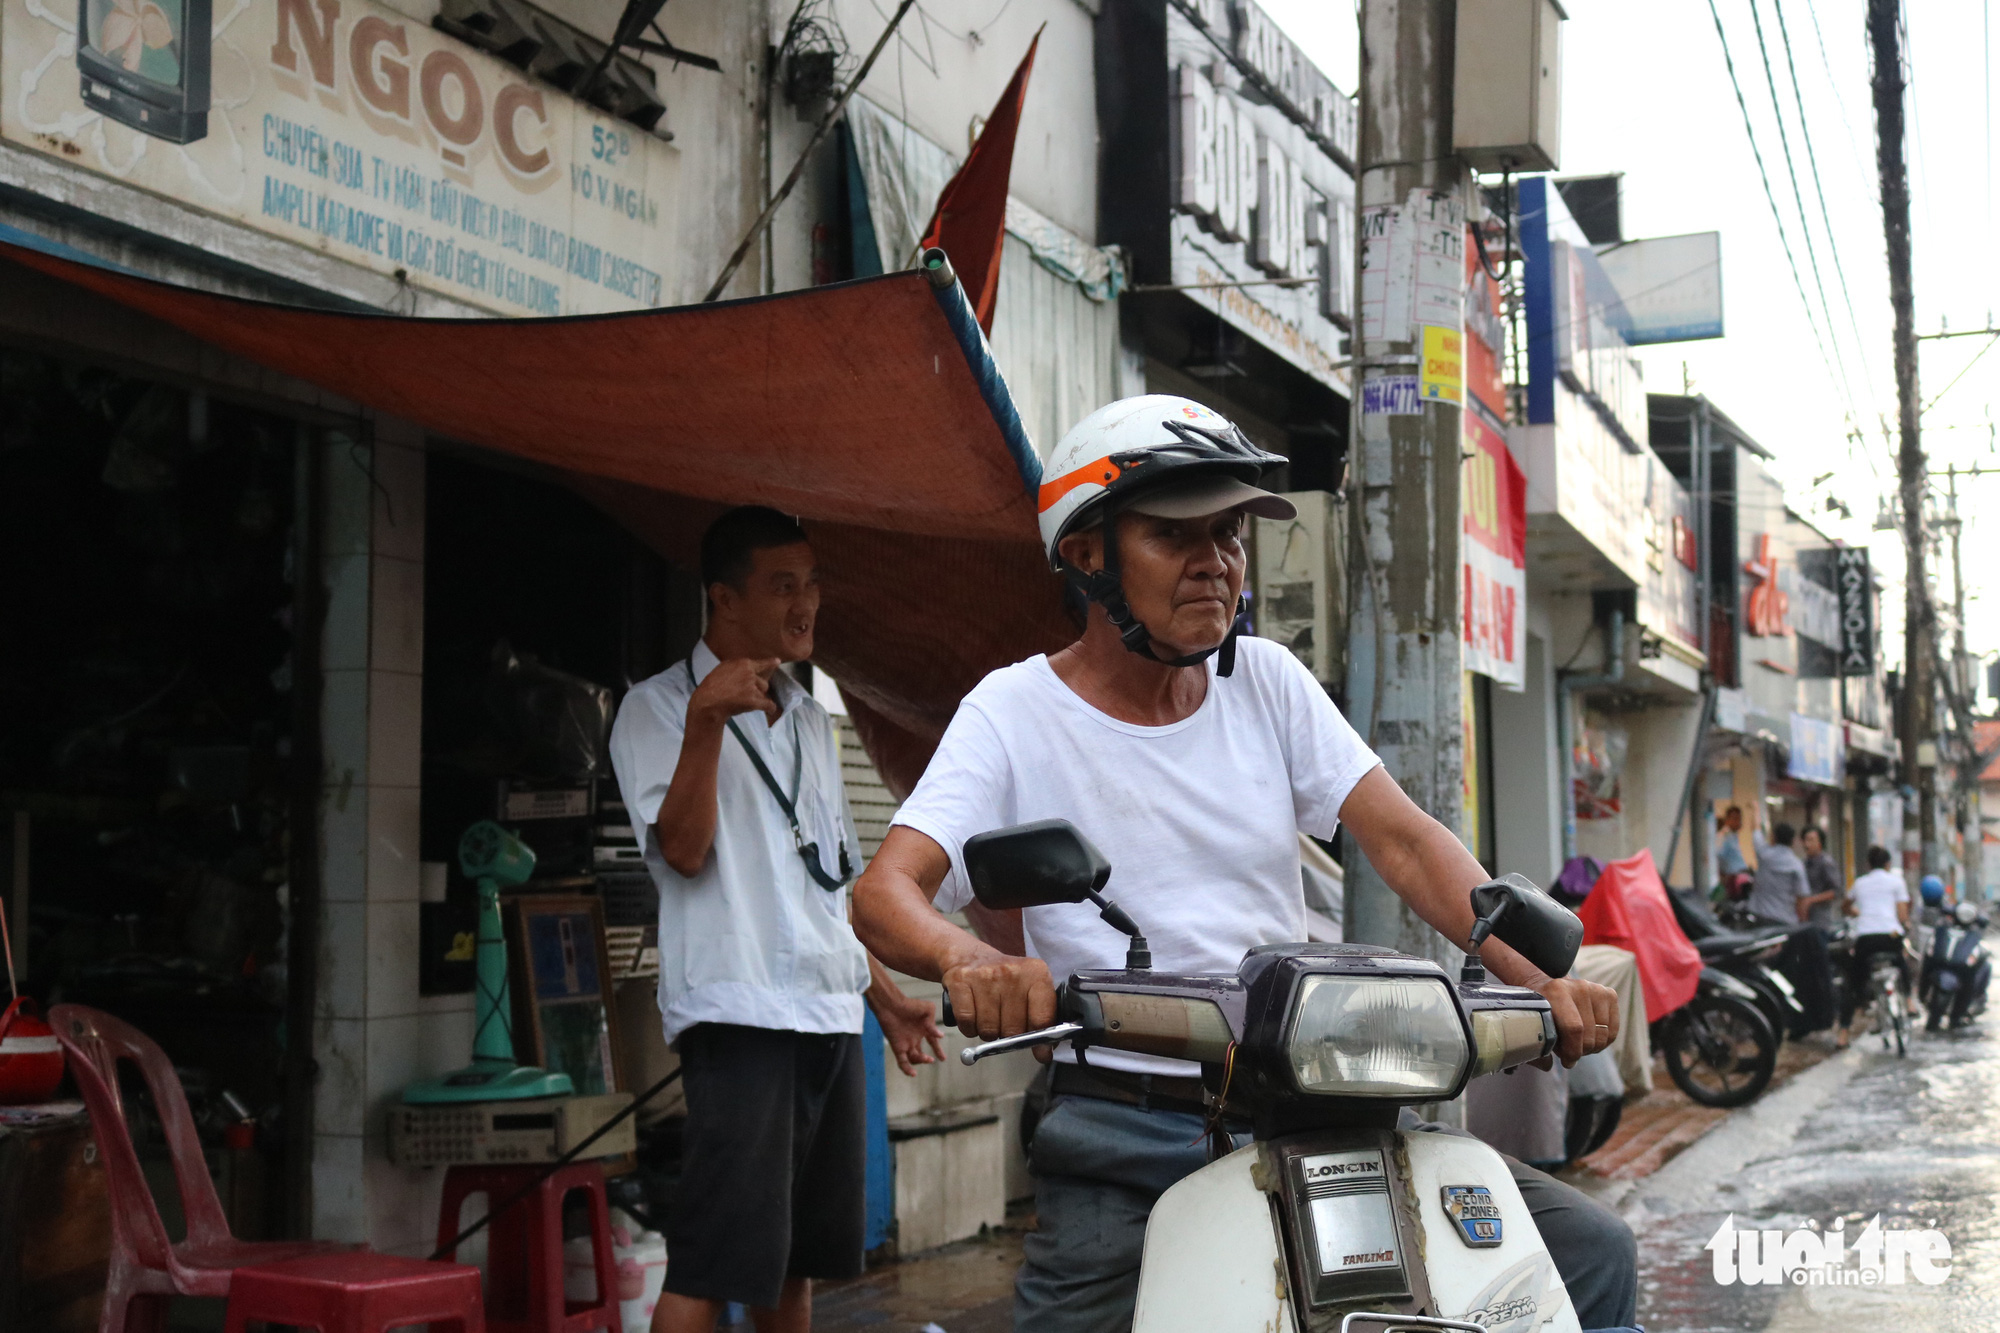 Tran Minh Tri (right) prepares for a motorbike taxi gig, leaving his son Anh Tu taking care of the repair shop on Vo Van Ngan Street in Thu Duc District, Ho Chi Minh City. Photo: Hoang An / Tuoi Tre